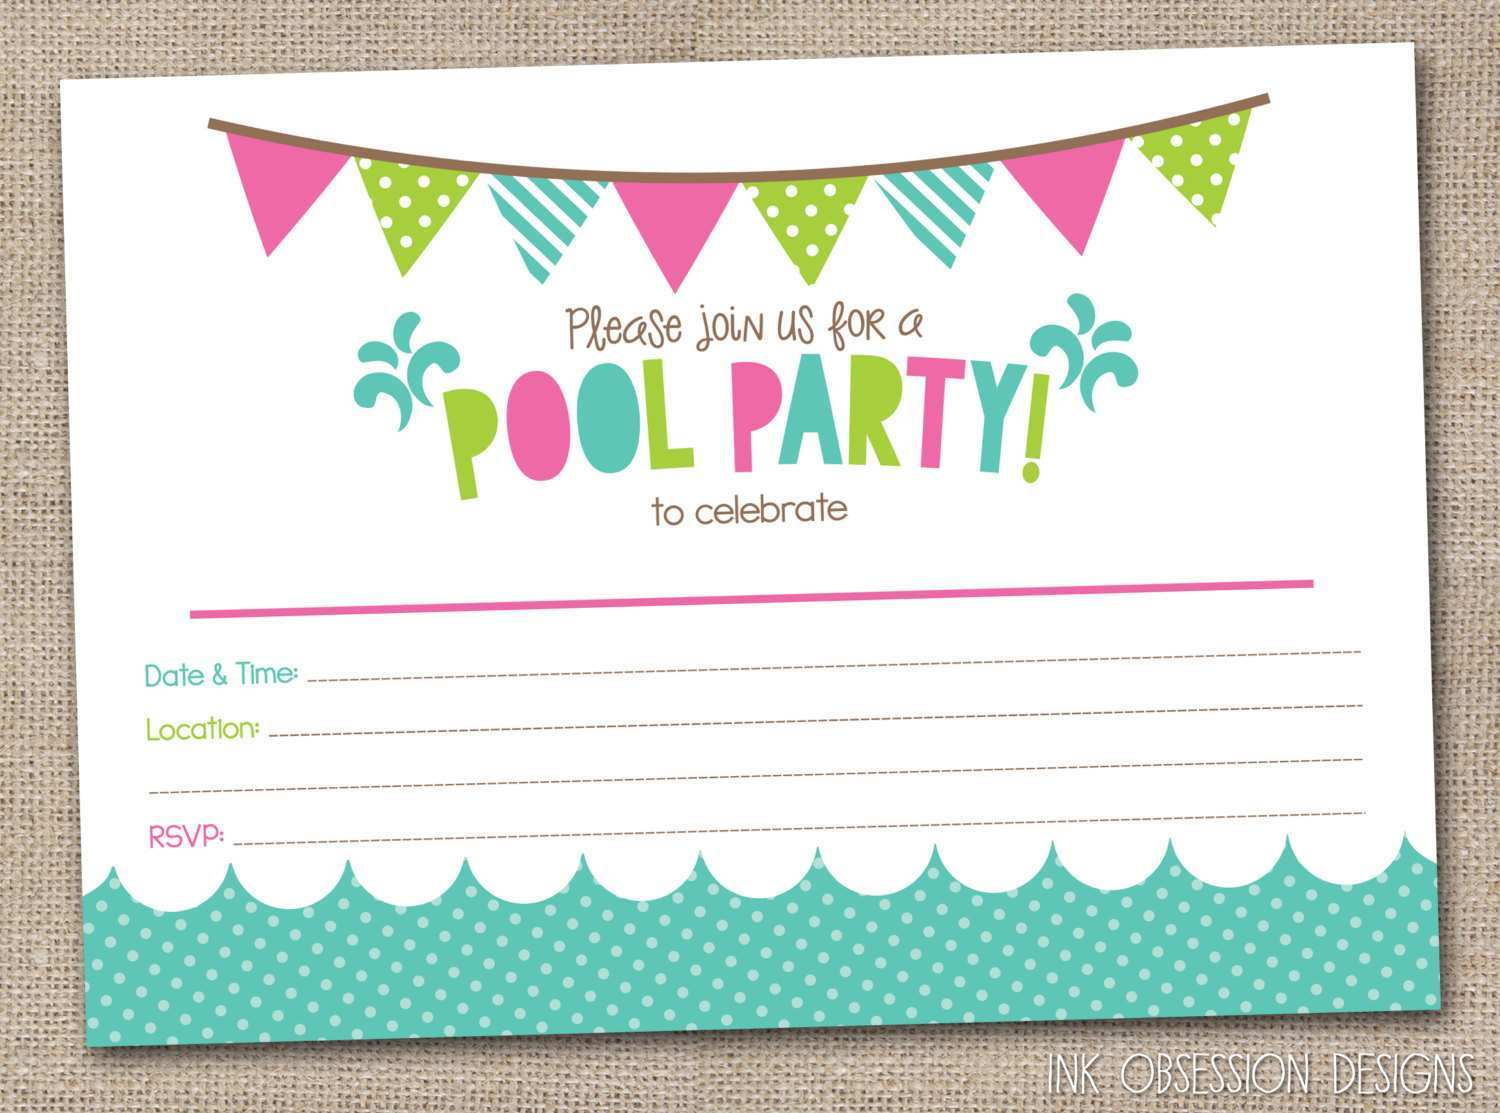 4 Creative Free End Of Year Party Invitation Template Templates